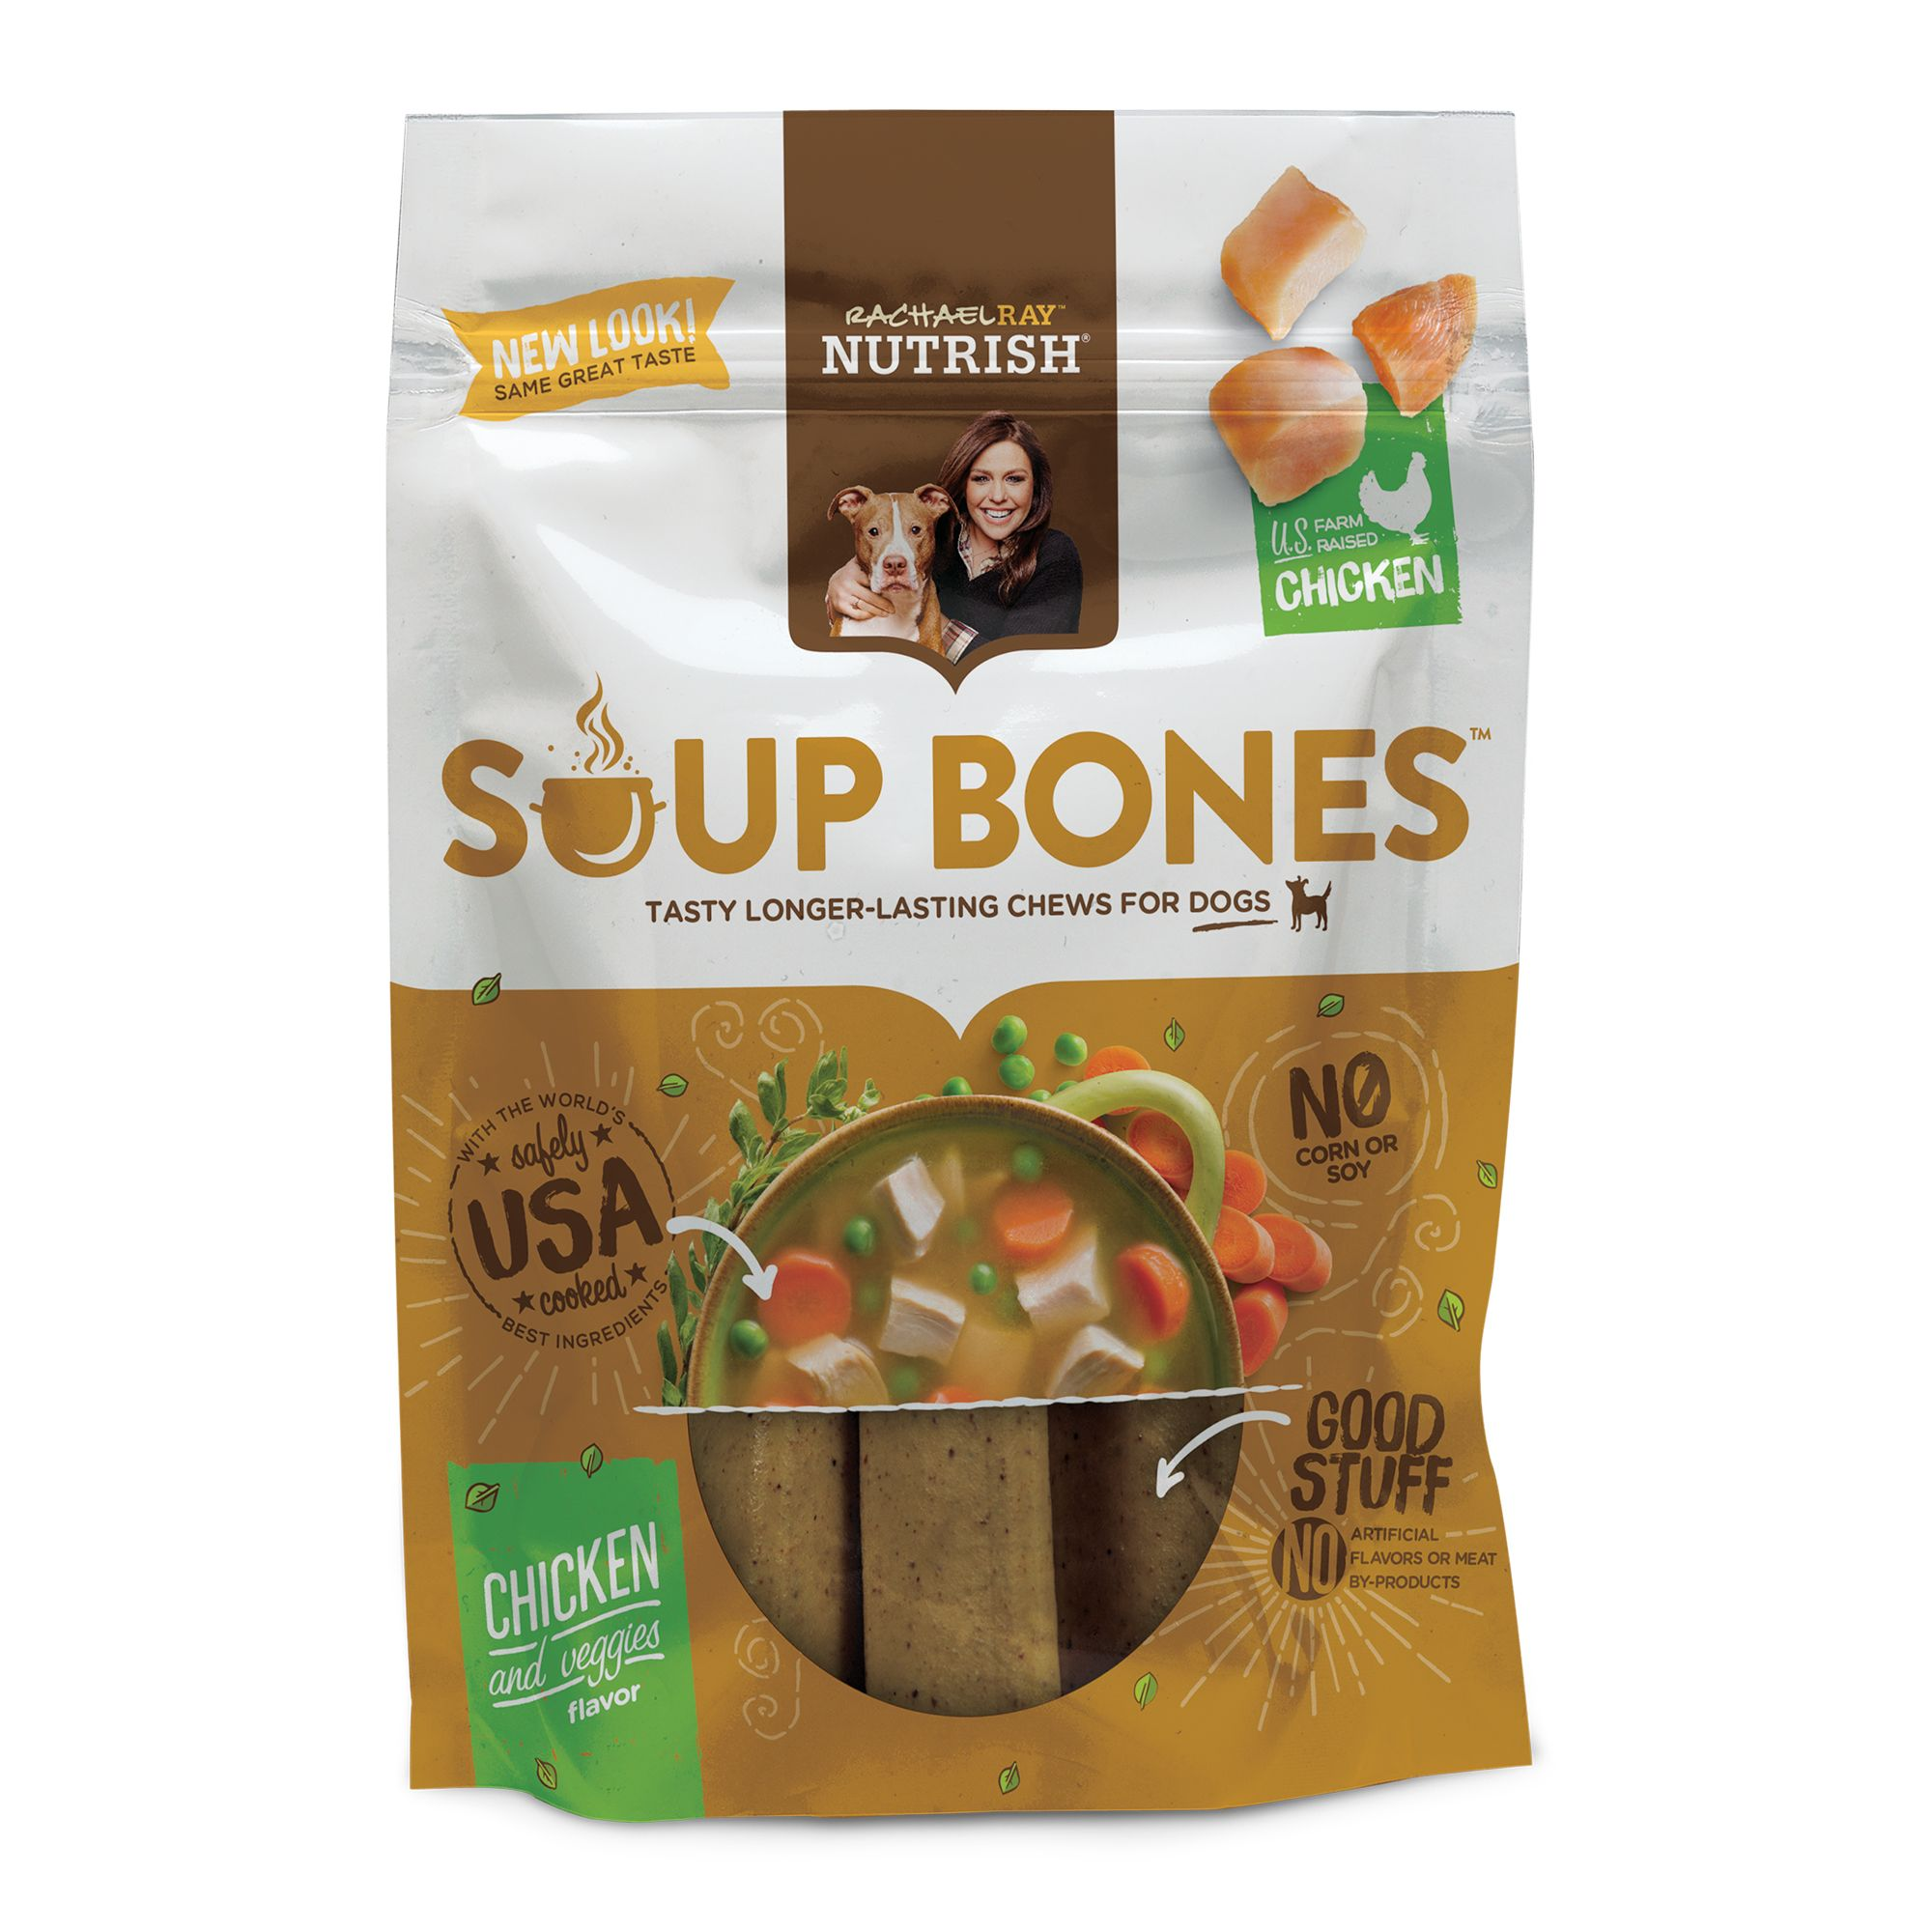 Rachael Ray, Nutrish Soup Bones Dog Treat - Chicken and Veggies Flavor size: 6 Count, Rachael Ray Nutrish 5278101